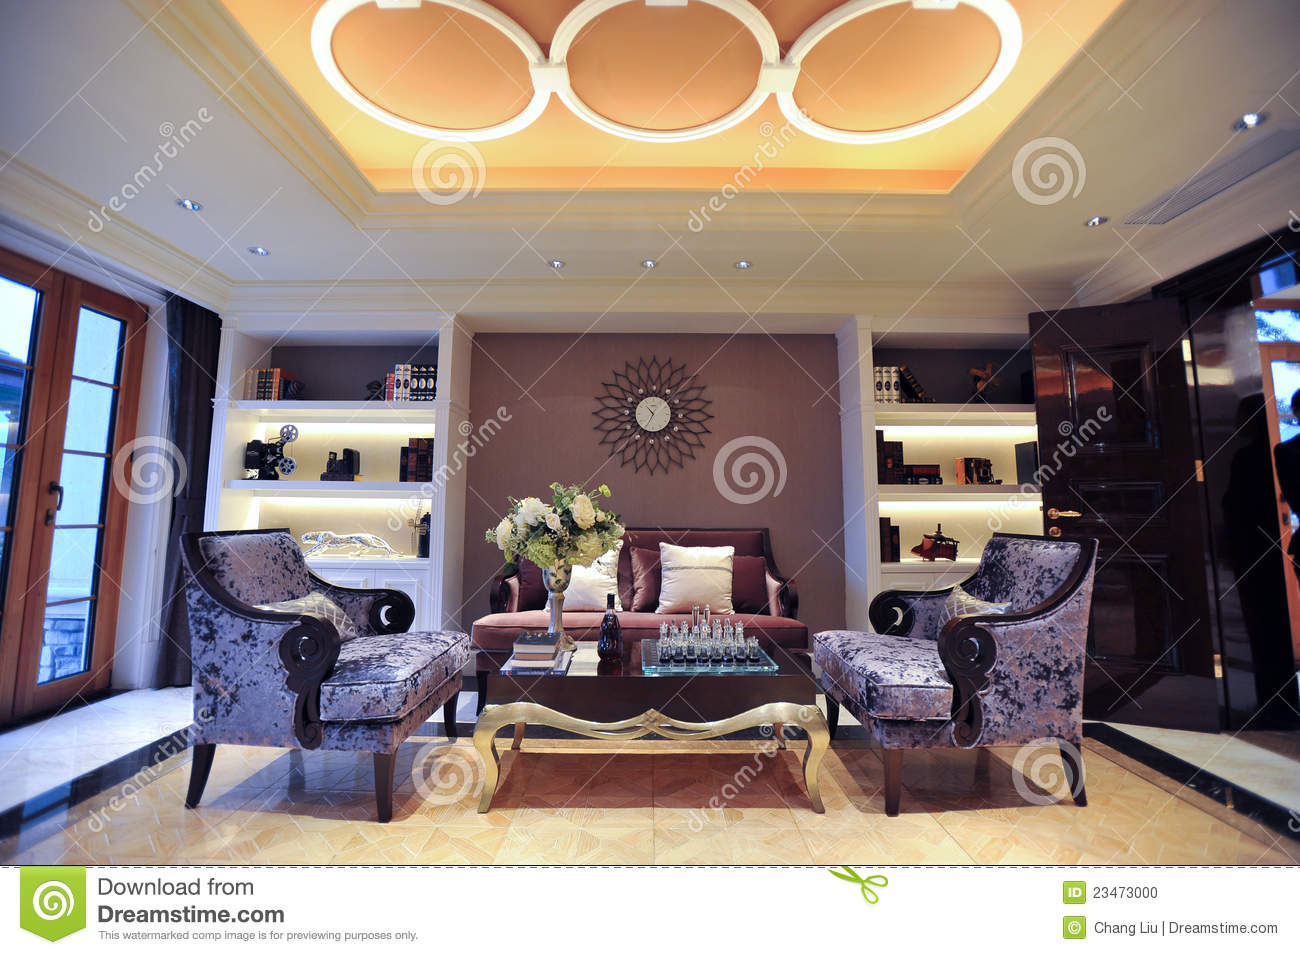 Sofas On Credit With No Checks Uk picture on stock photo mansion living room image23473000 with Sofas On Credit With No Checks Uk, sofa bc24523b056b36d3a8d80d0562160752